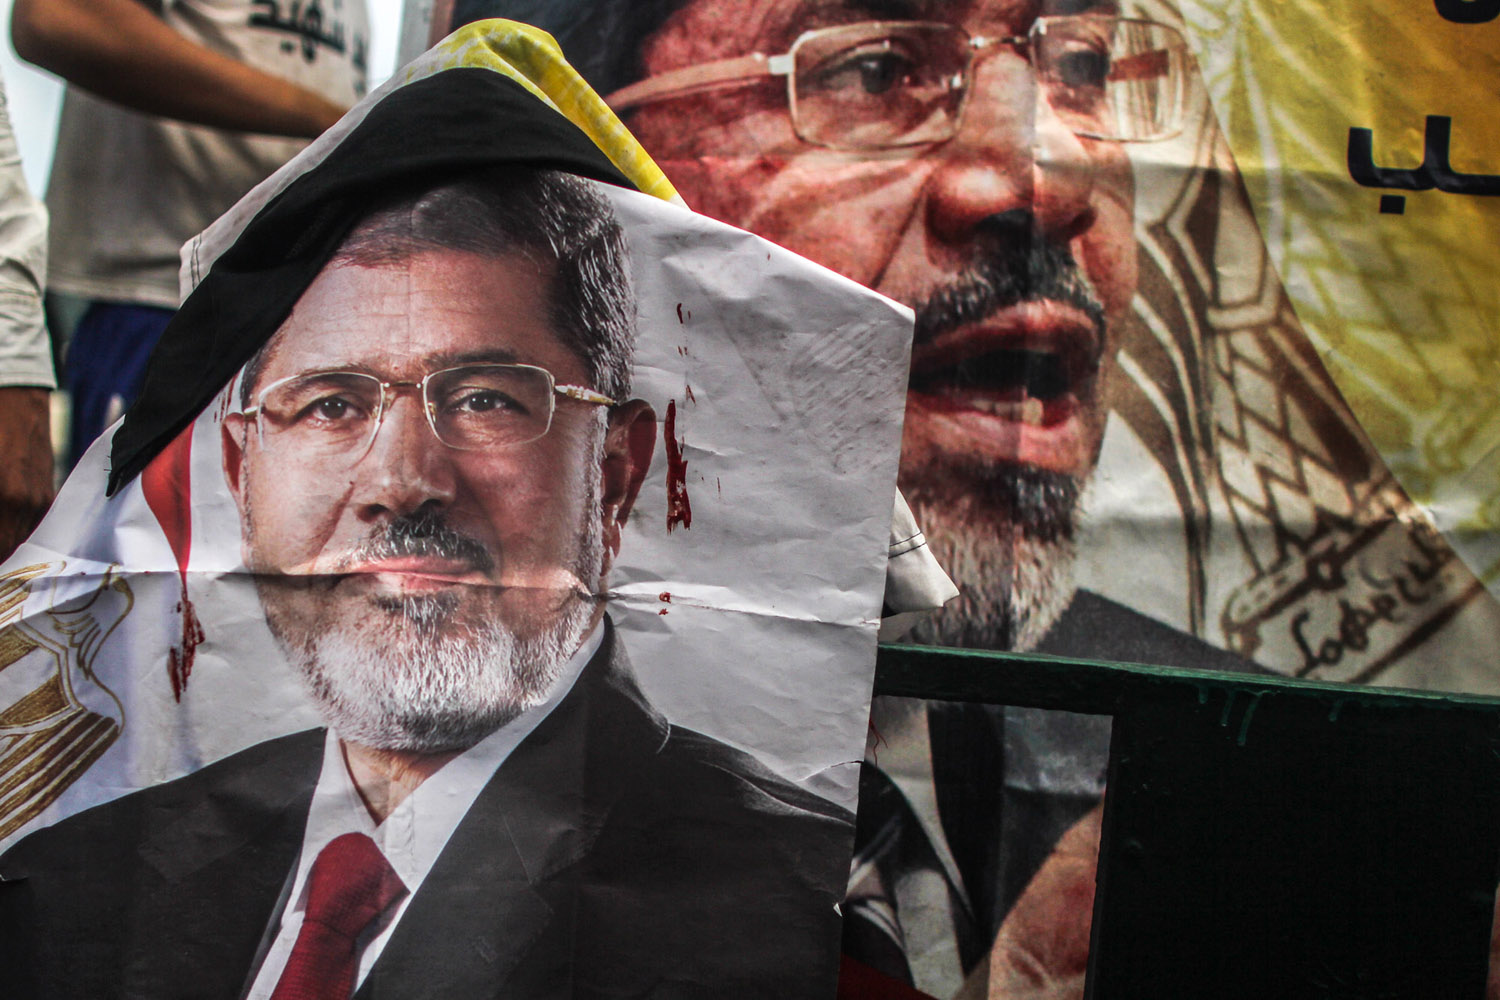 A blood-stained Morsi poster hanging at the Rabaa sit-in.